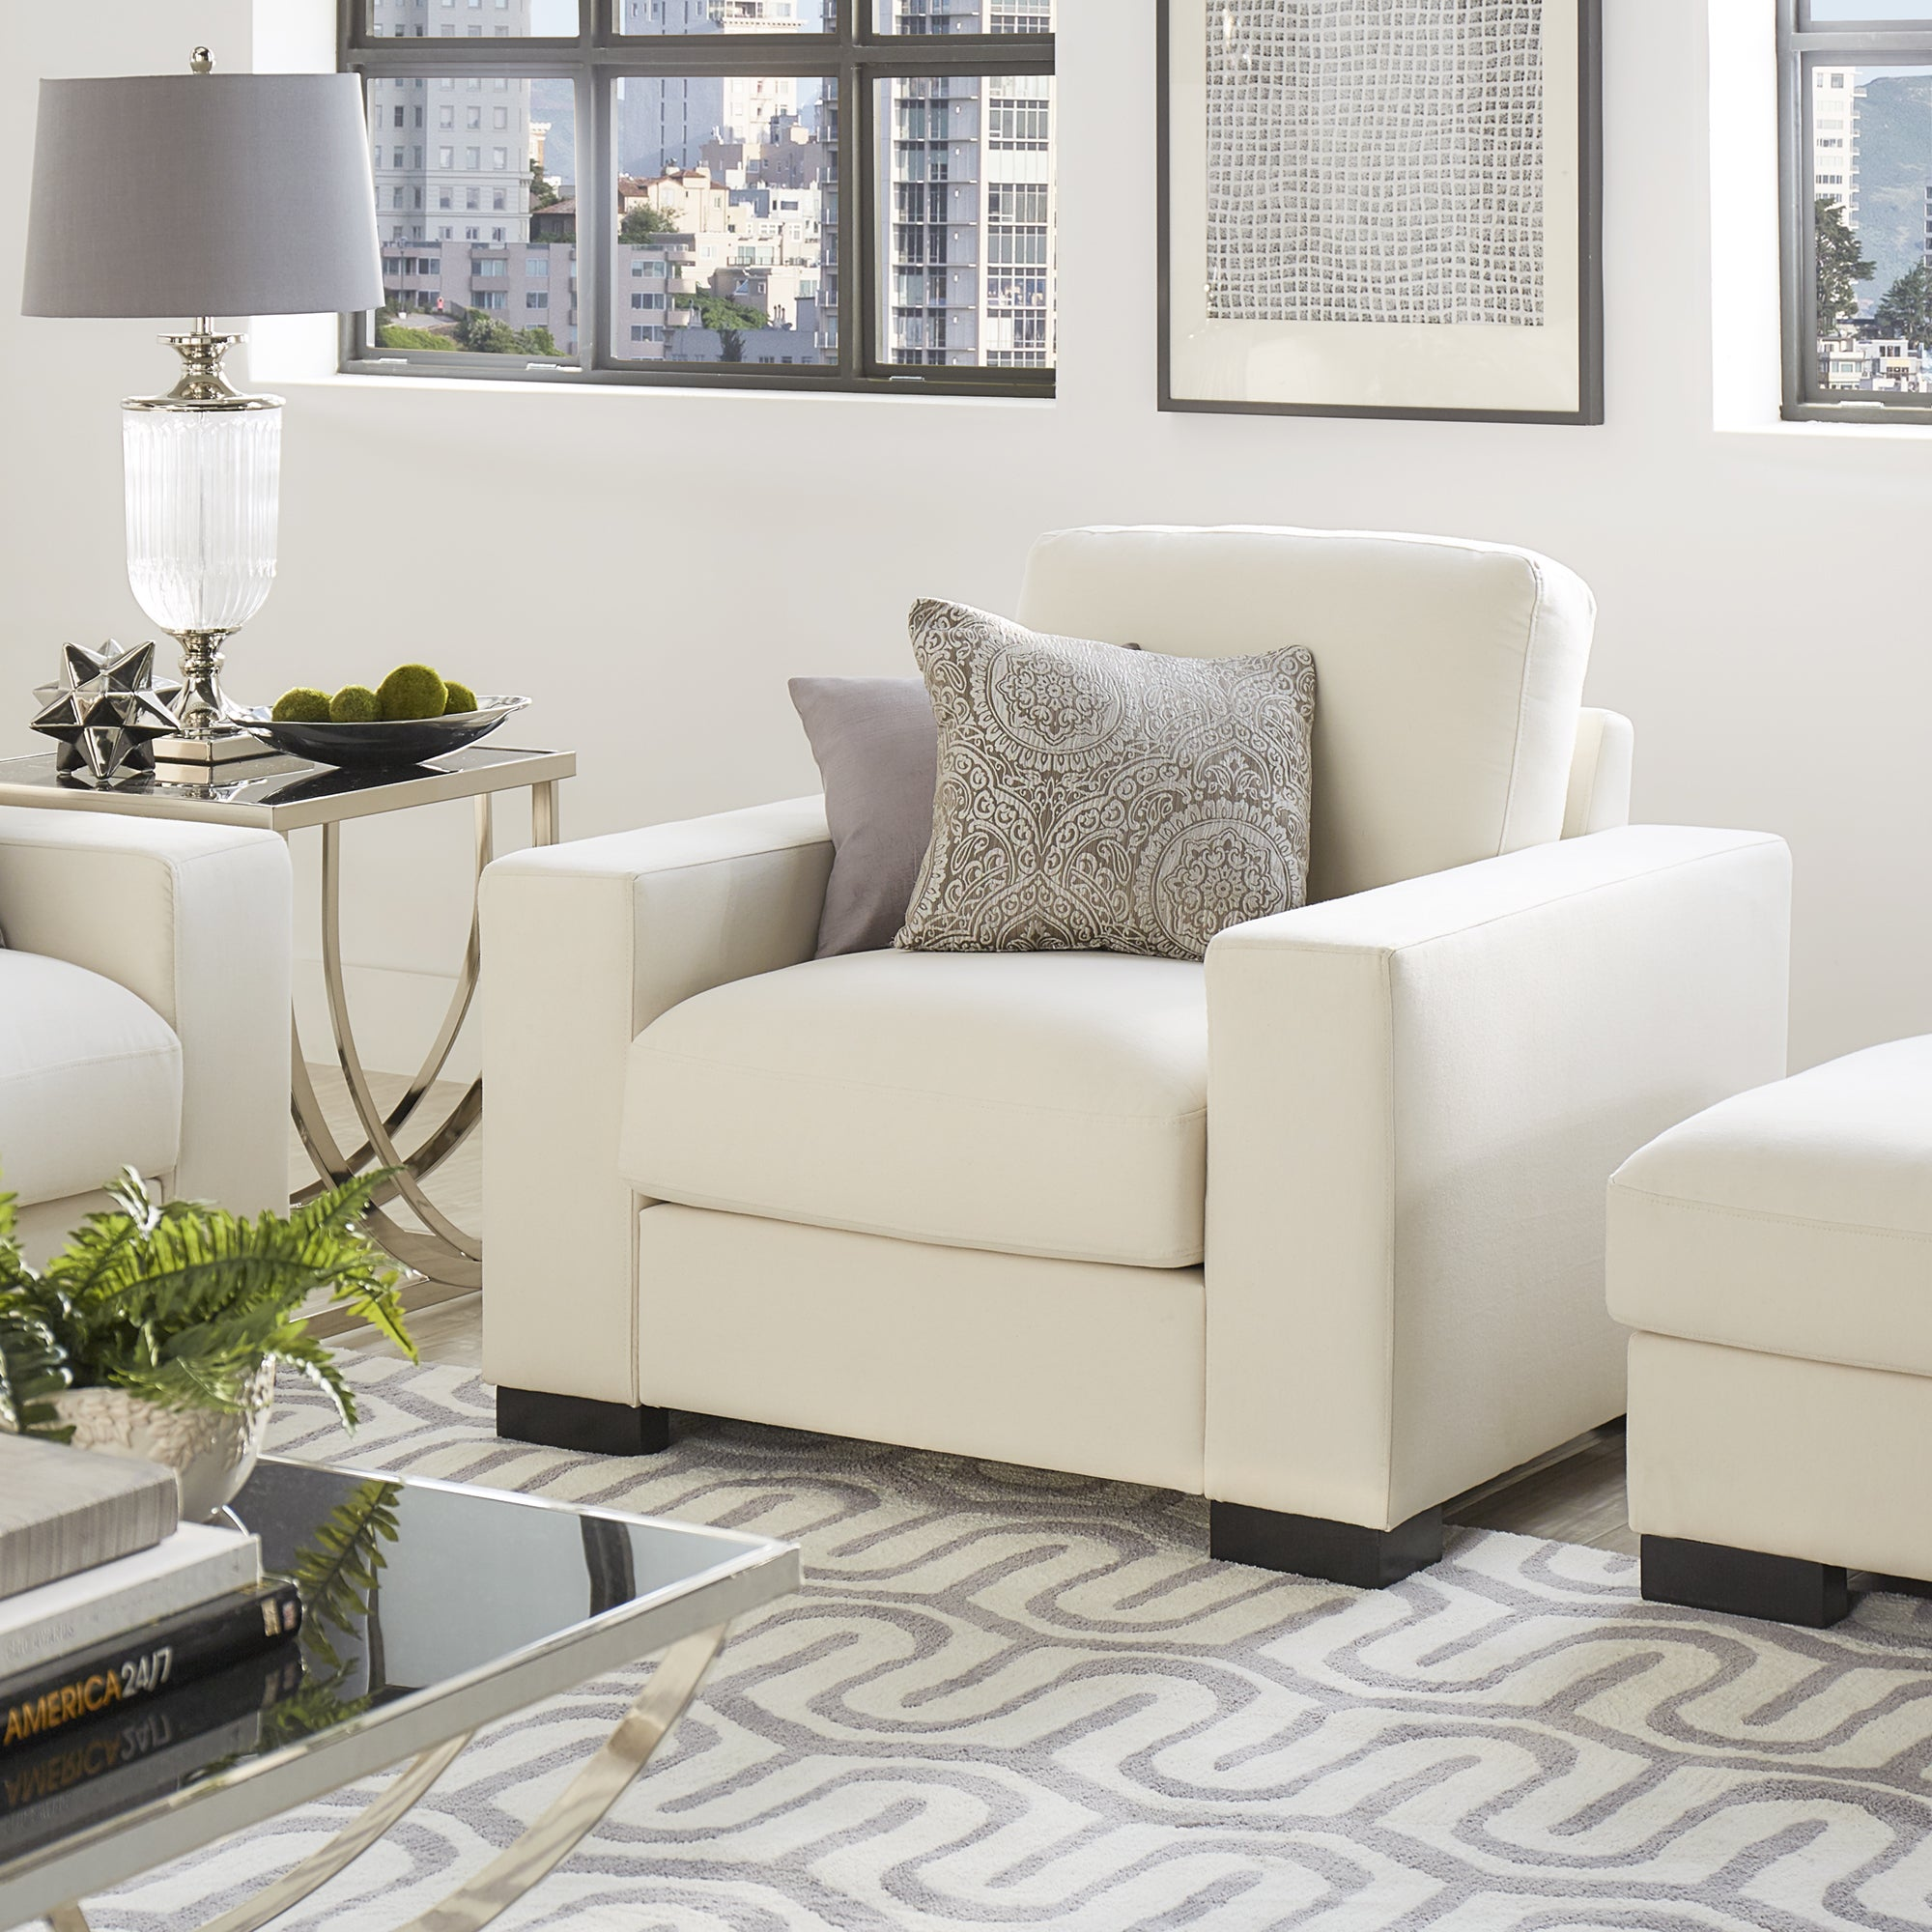 Shop Lionel White Cotton Down Filled Fabric Chair By INSPIRE Q Artisan    Free Shipping Today   Overstock.com   14046504